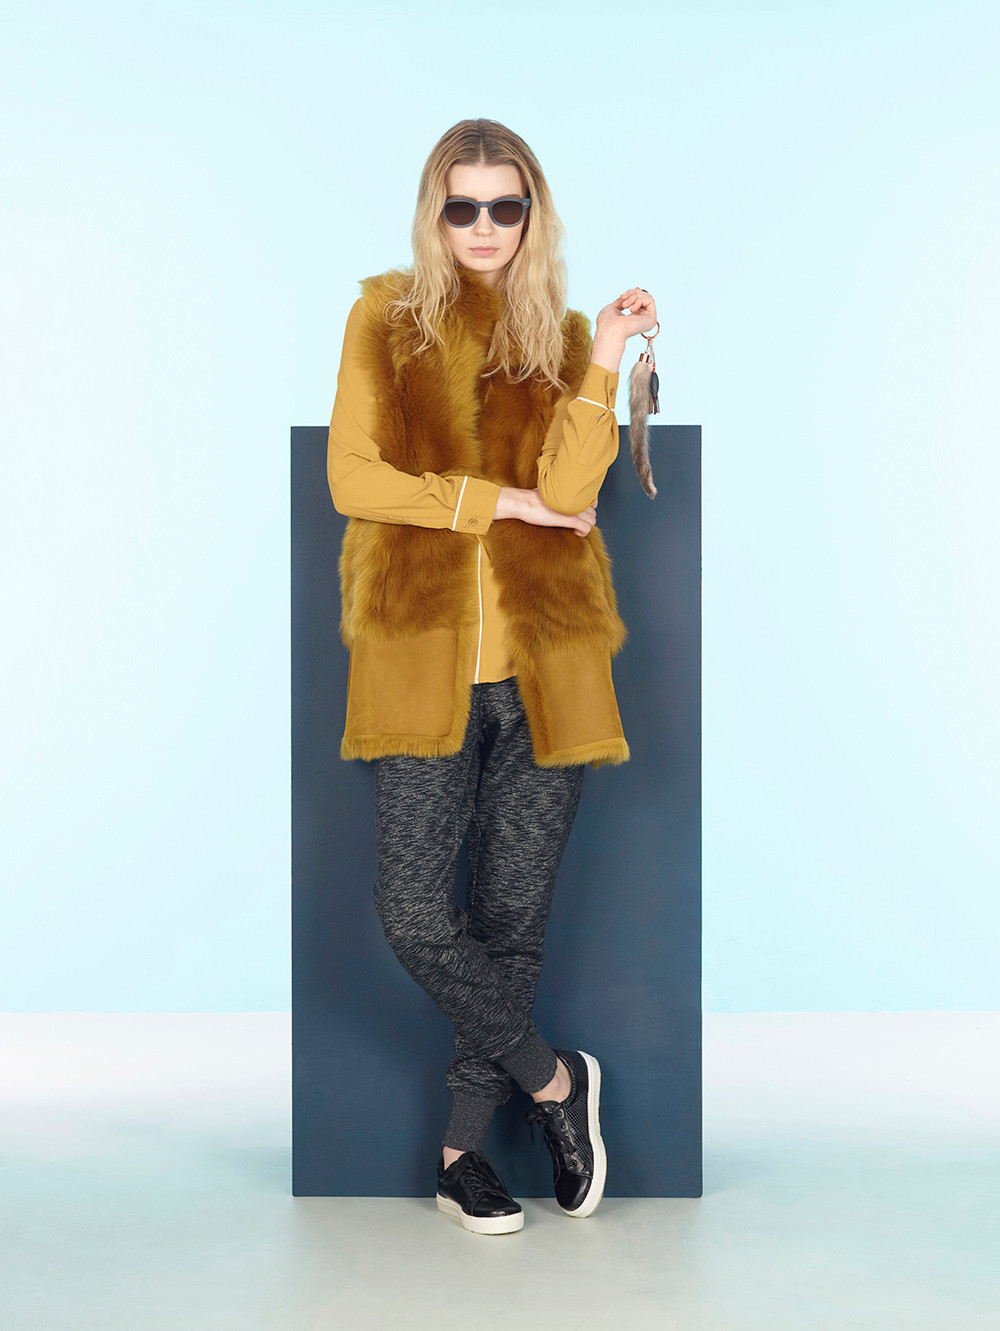 Creative fashion photography with a female model for fur and leather brand Karl Donoghue